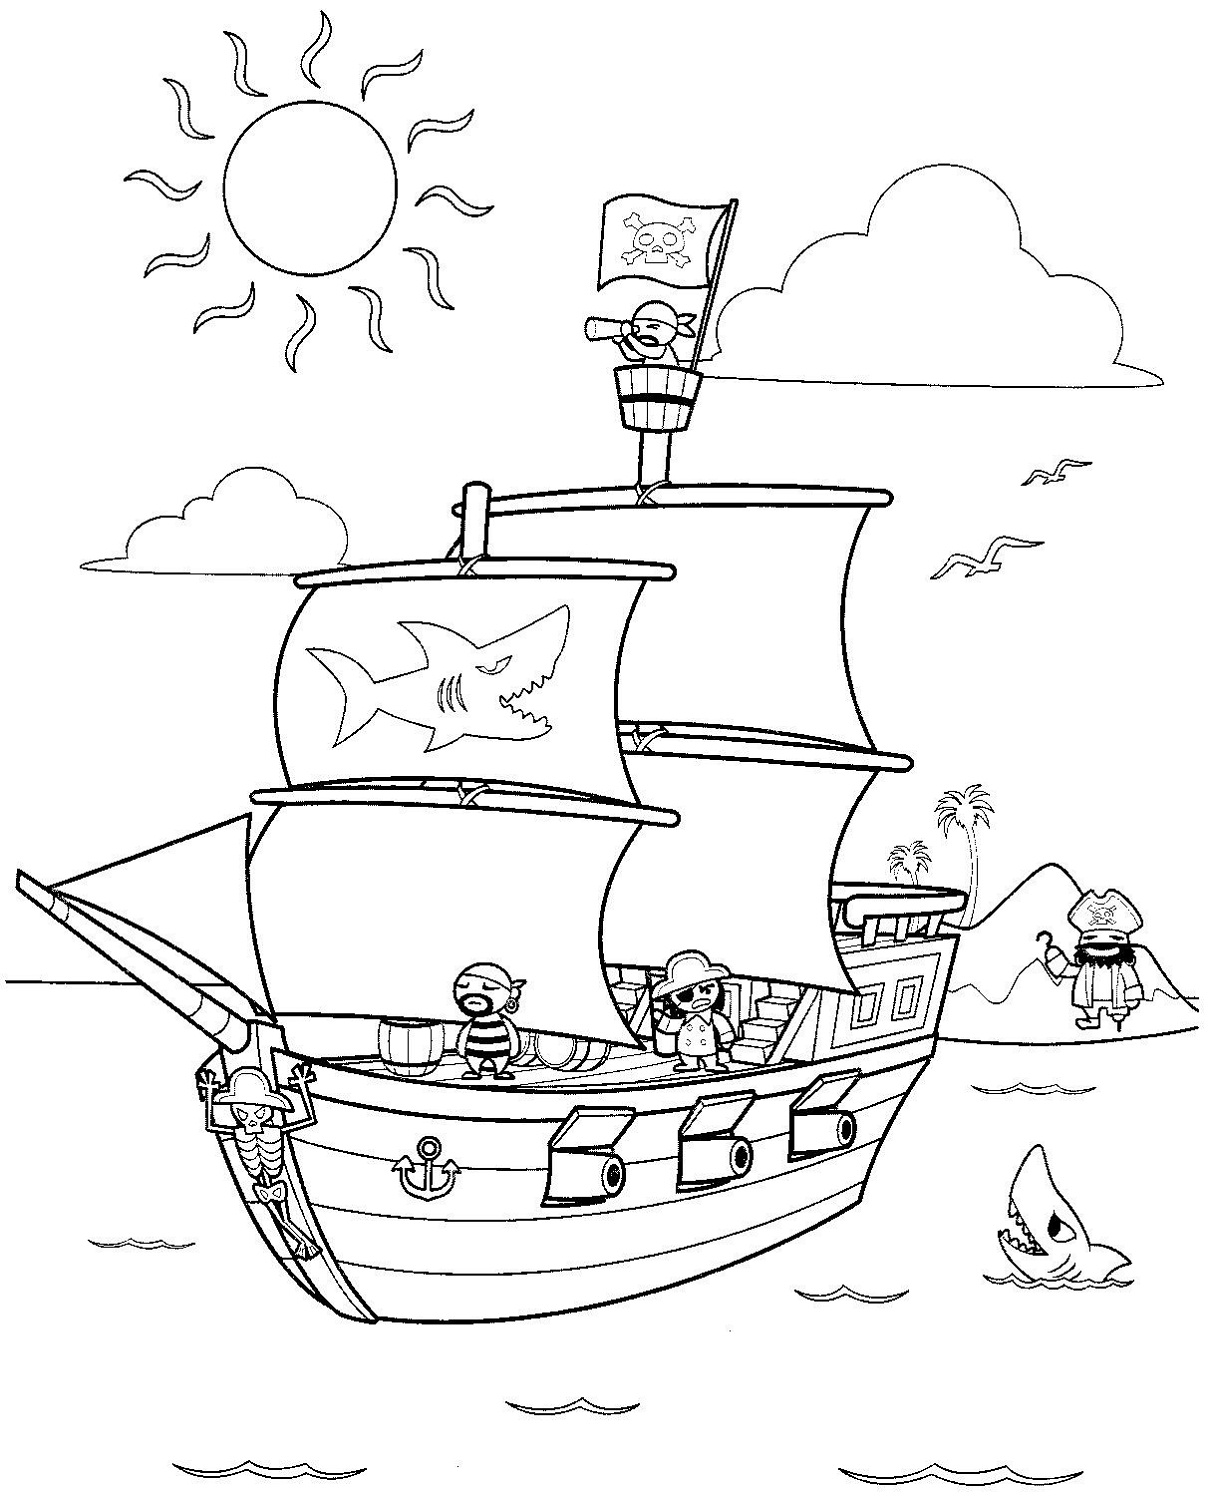 pirate ship printable pirate ship pictures for kids activity shelter pirate printable ship